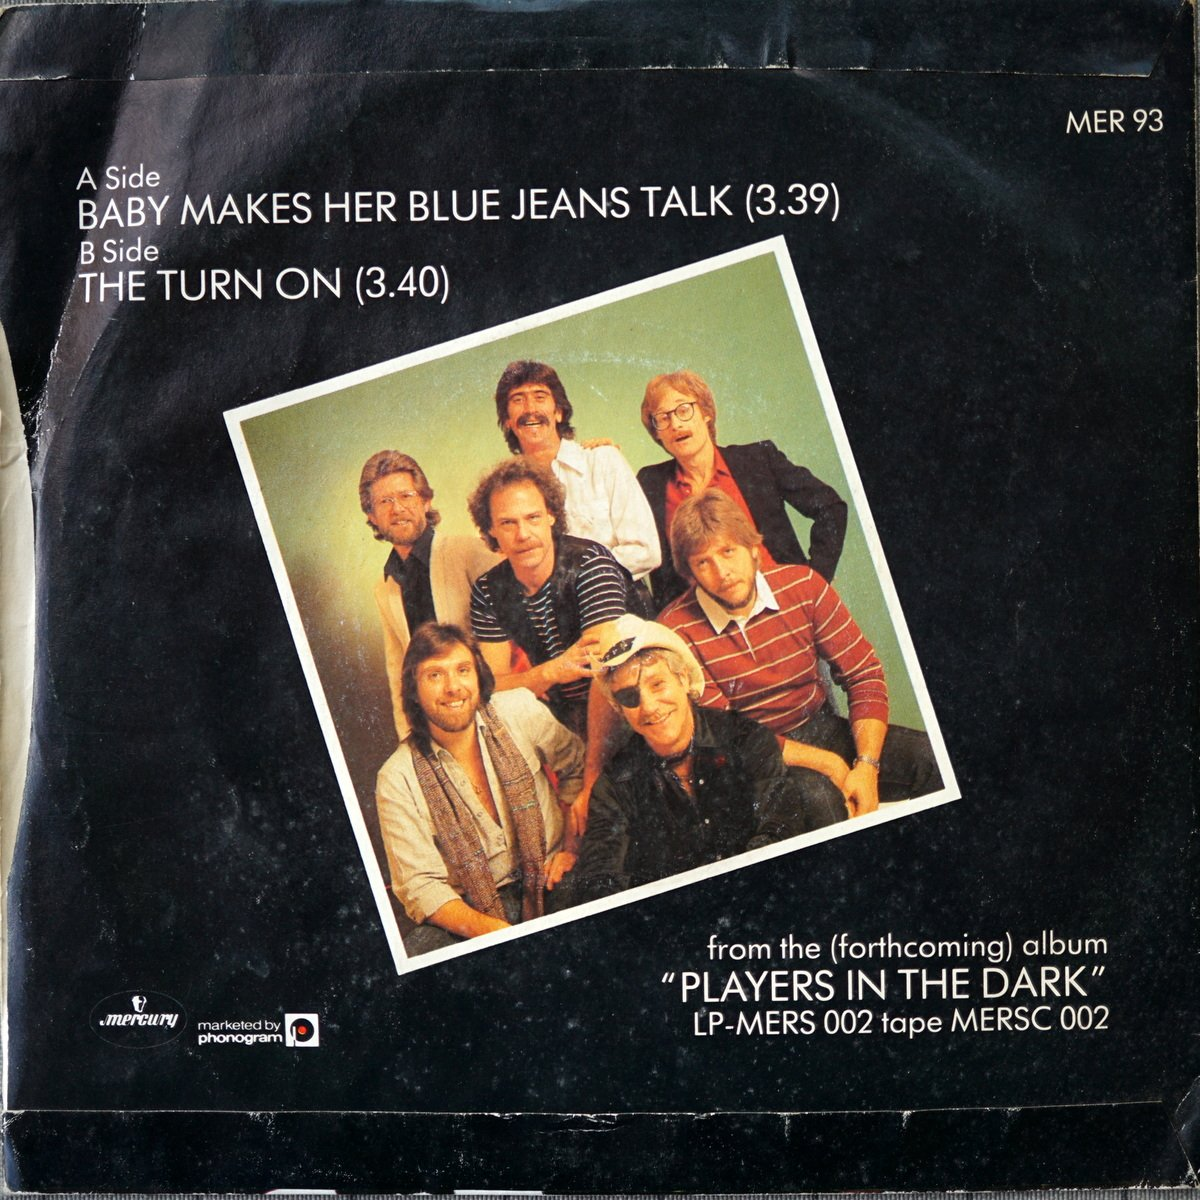 S PD A1 - MER 93 - Baby Let Her Blue Jeans Talk - 1982 - UK - 2